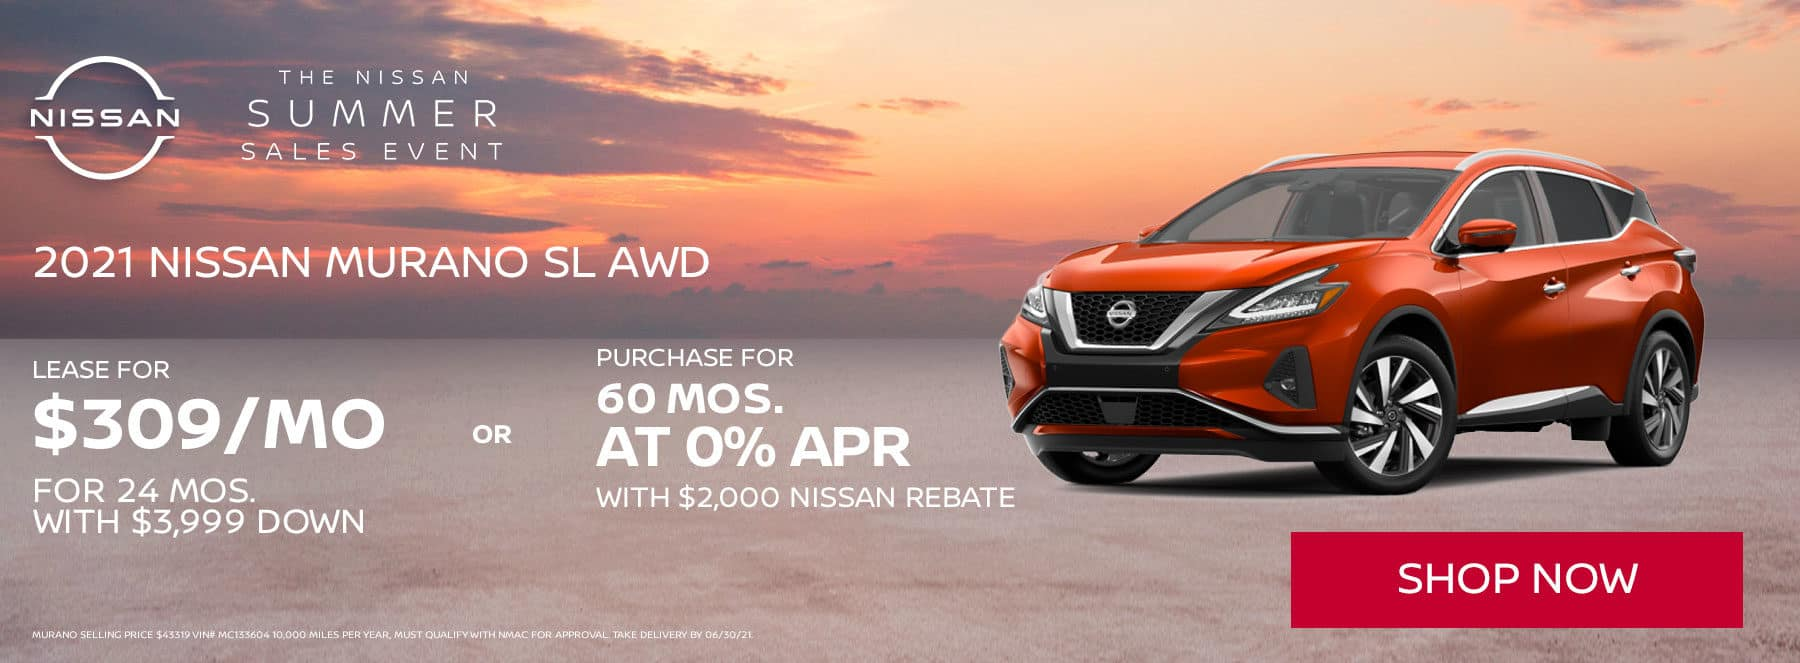 Lease a 2021 Nissan Murano SL for 24 months $309 per month with $3999 down or purchase 60 months @ 0% with $2000 Nissan rebate